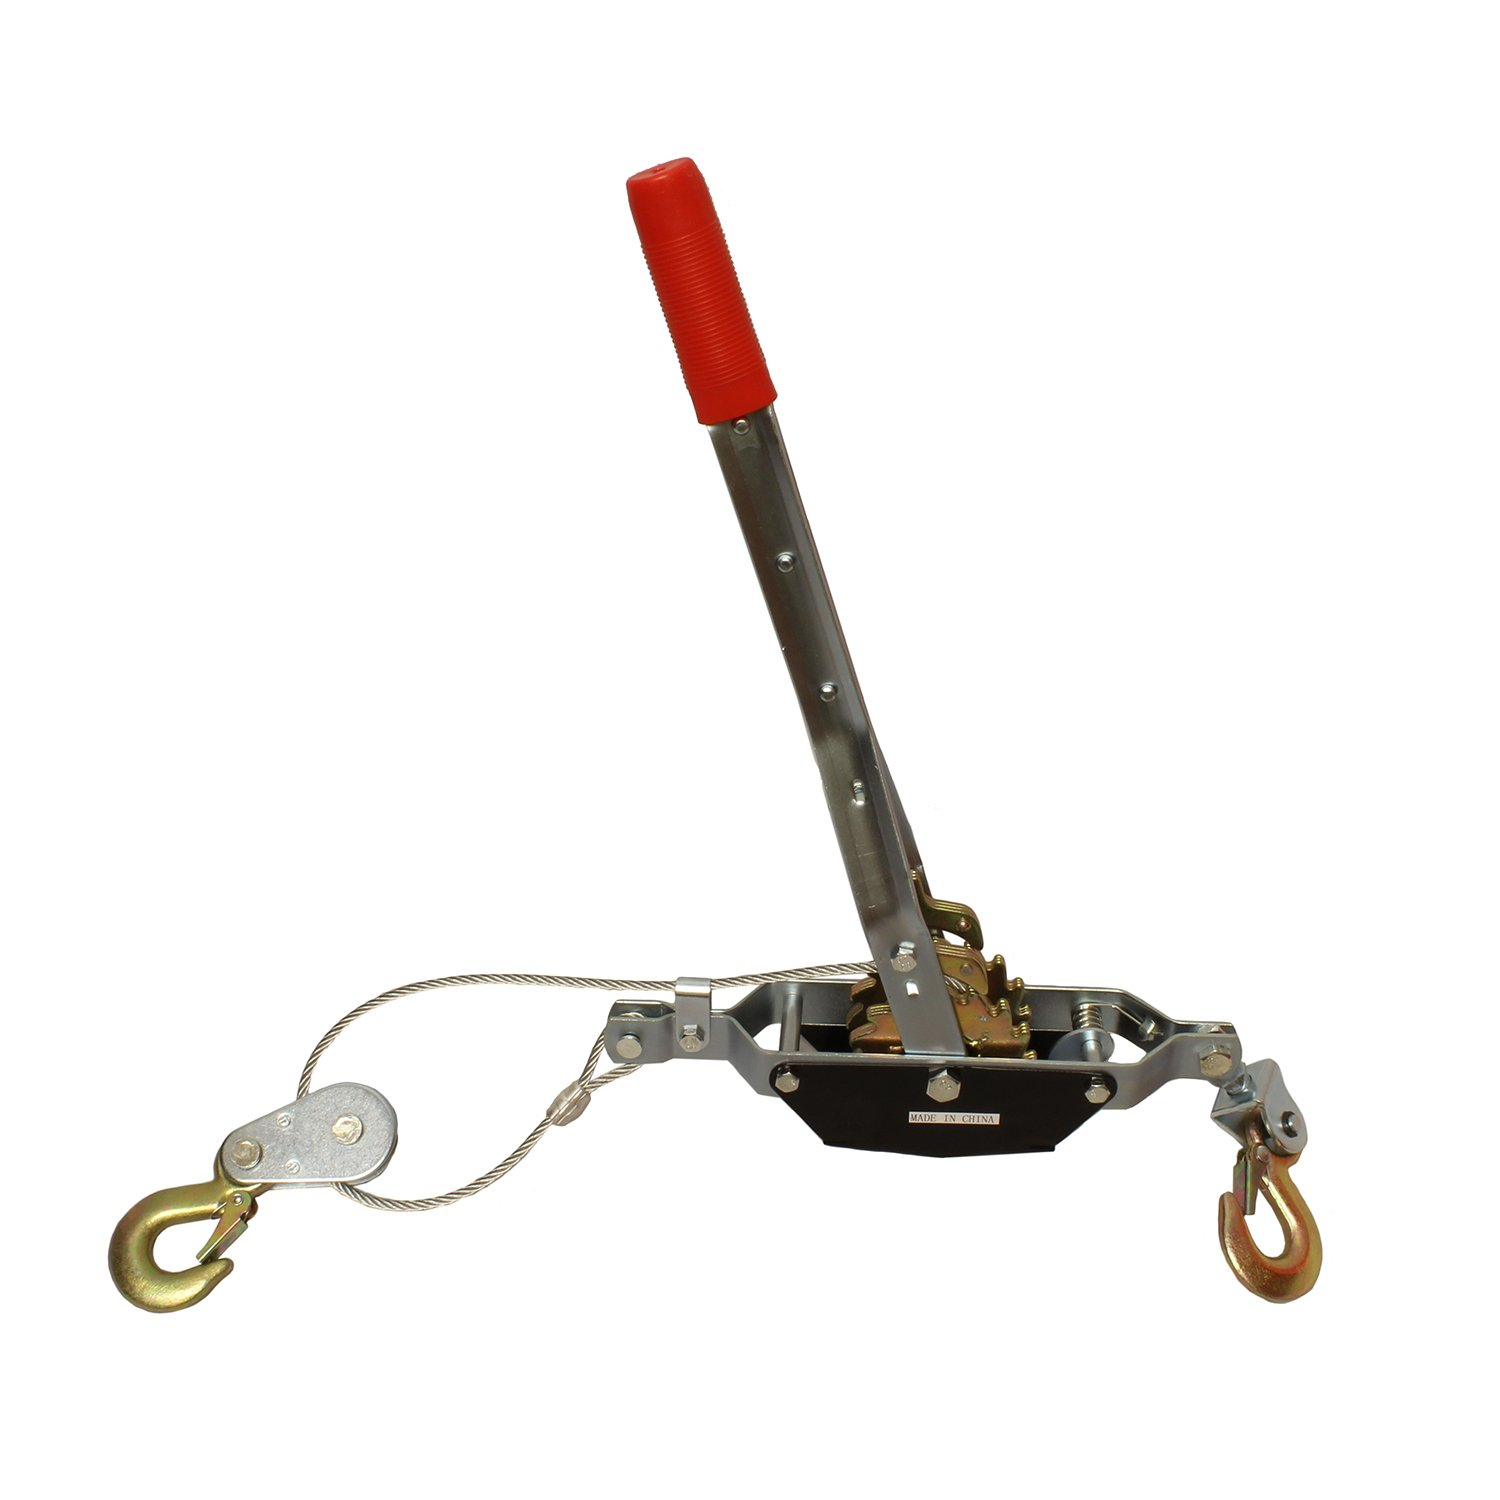 ABN Heavy-Duty Hand Puller with Cable Rope – 2 Ton Capacity, Dual (2) Gear, 2 Hooks – Come Along Cable Puller Tool